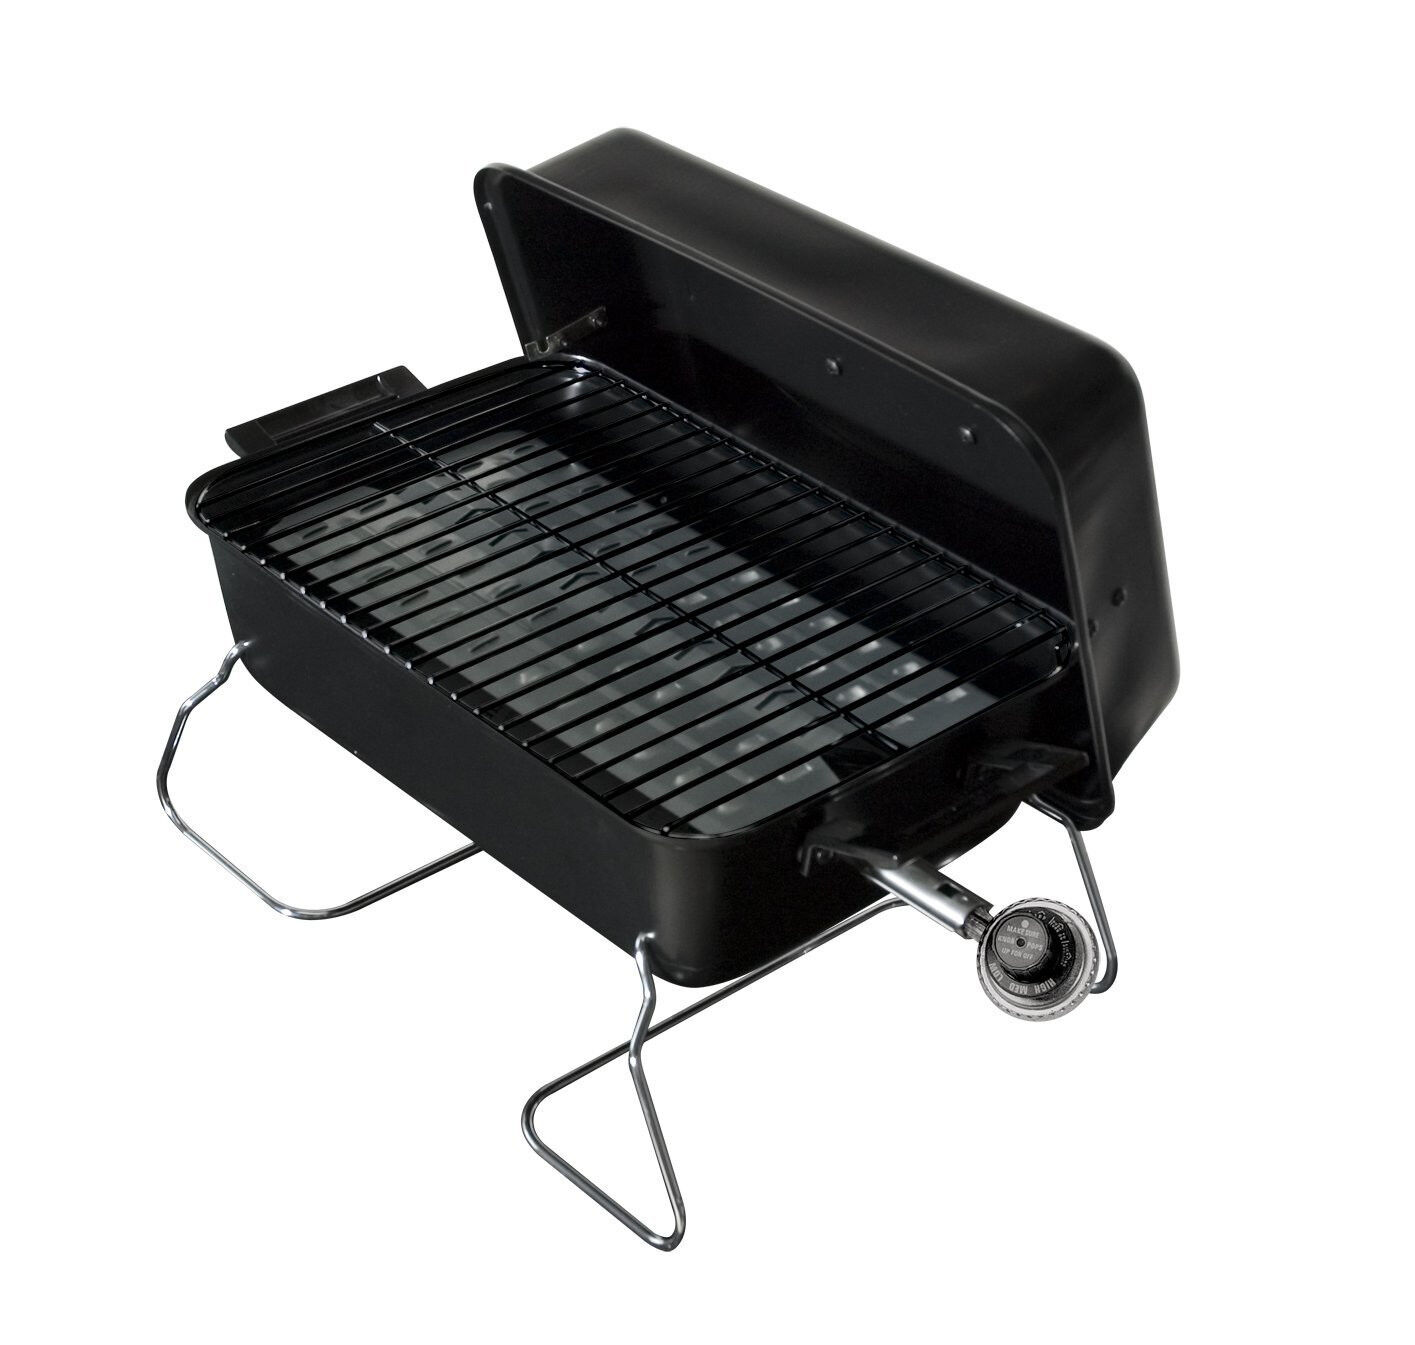 new tabletop gas grill portable propane barbecue bbq. Black Bedroom Furniture Sets. Home Design Ideas